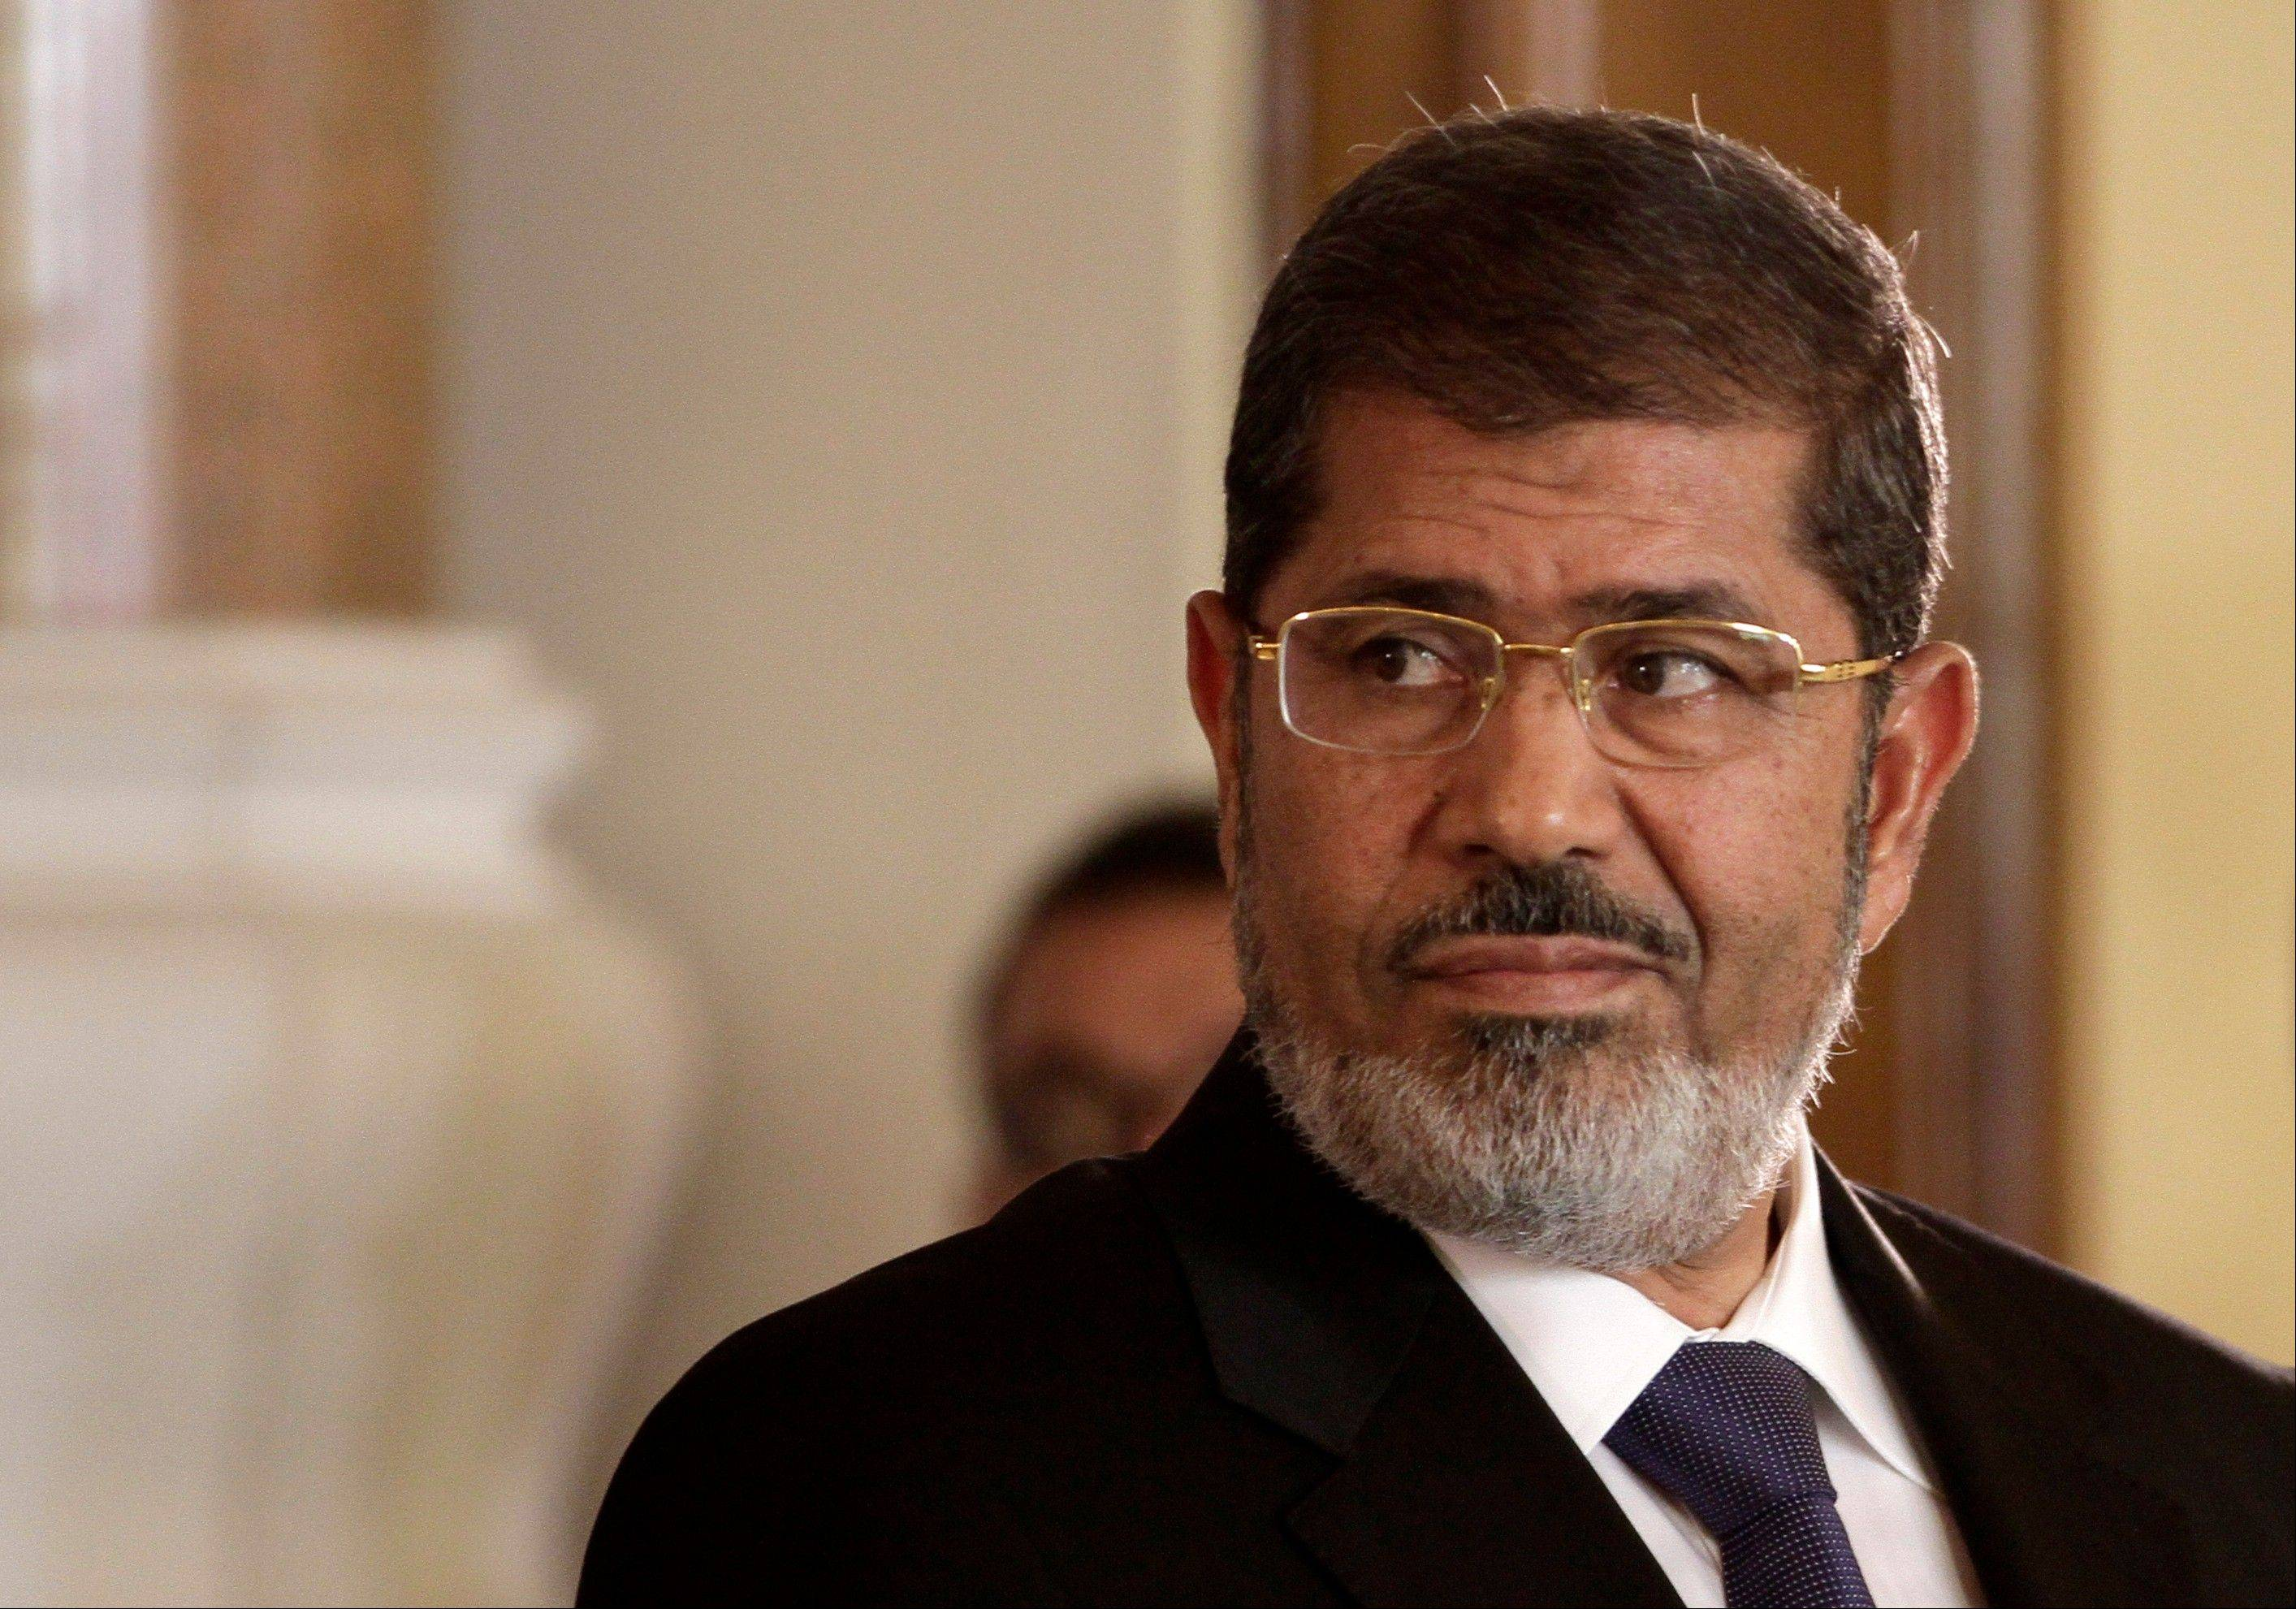 Egypt�s top prosecutor referred toppled Islamist President Mohammed Morsi to trial Wednesday for conspiring with the Palestinian group Hamas, Lebanon�s Hezbollah and others to carry out a campaign of violence in the Sinai Peninsula and beyond to destabilize the country following his ouster.